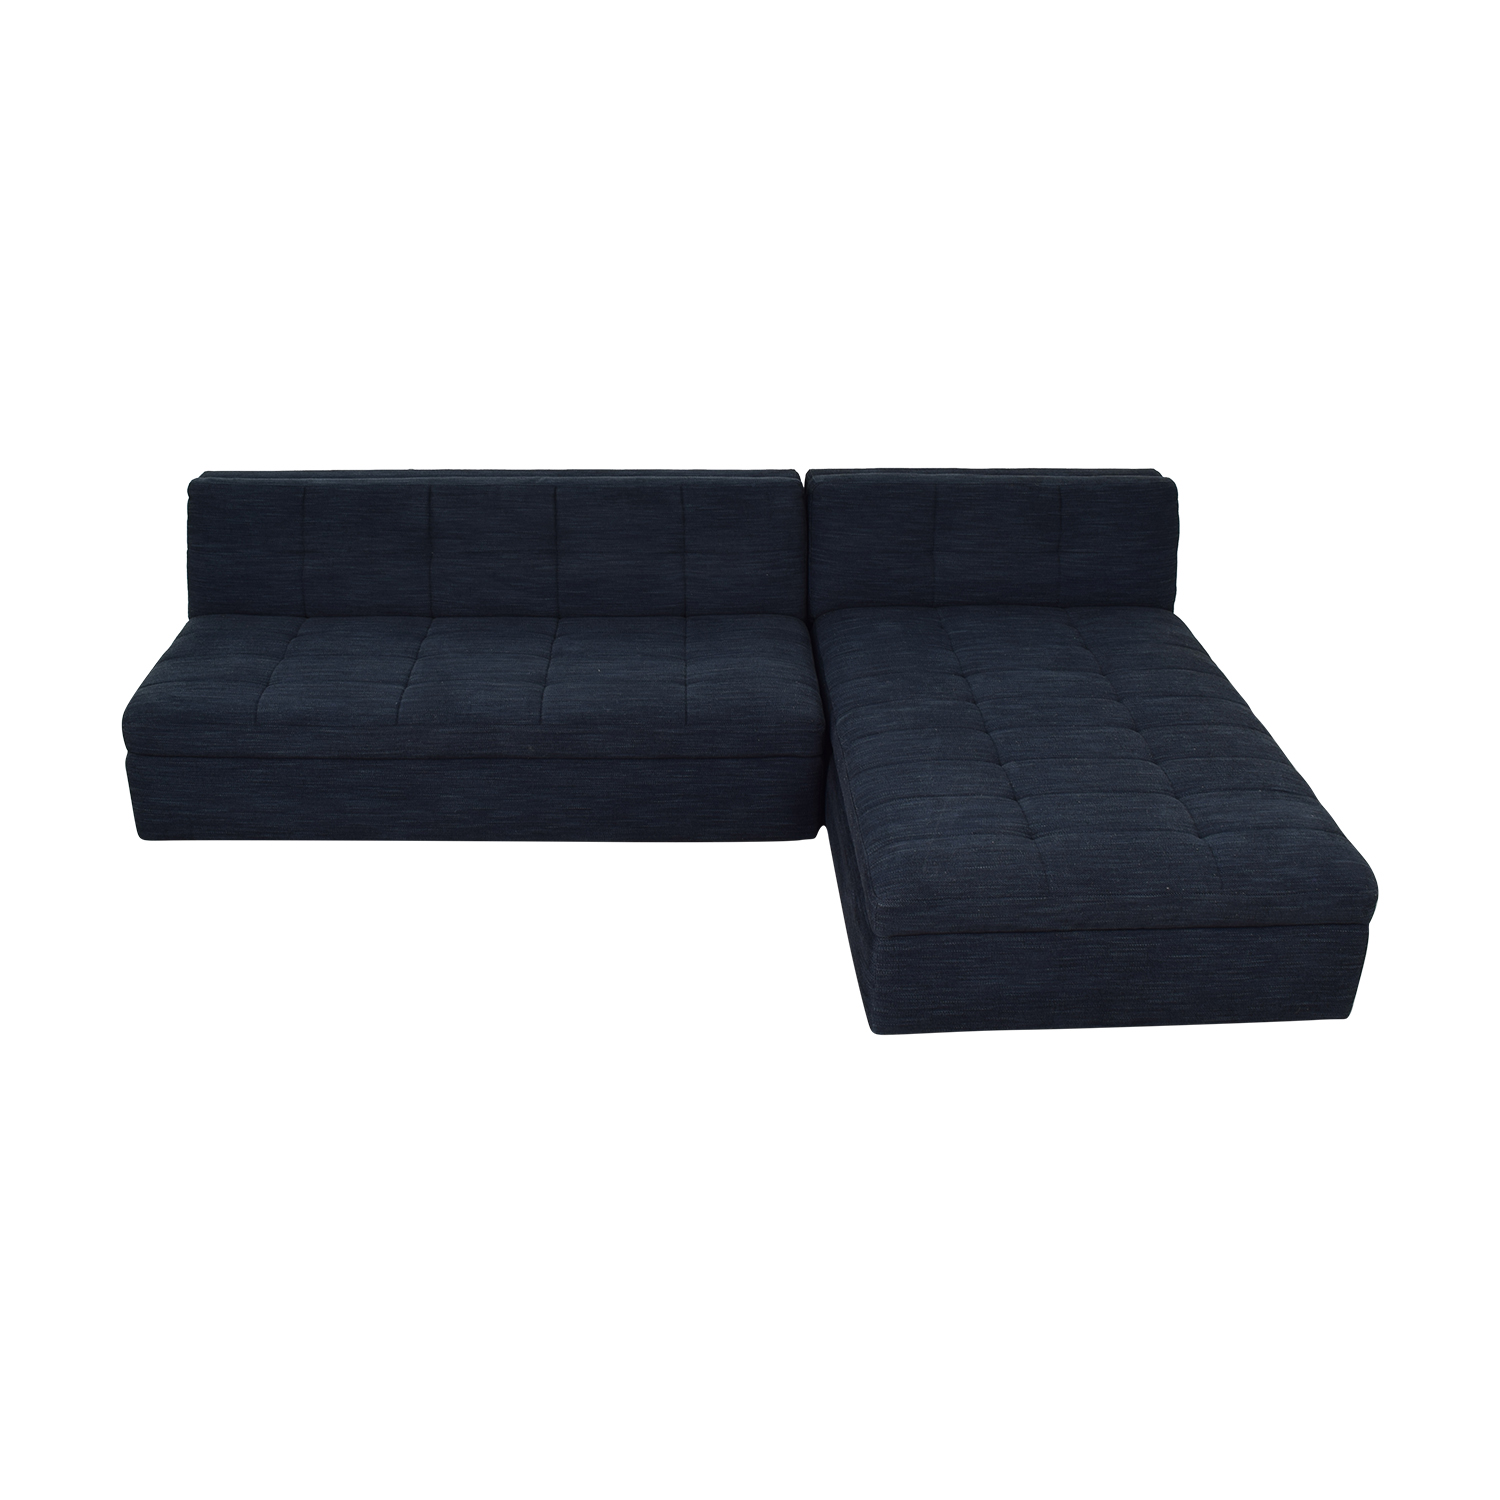 West Elm West Elm Plateau Armless Sofa with Storage Chaise